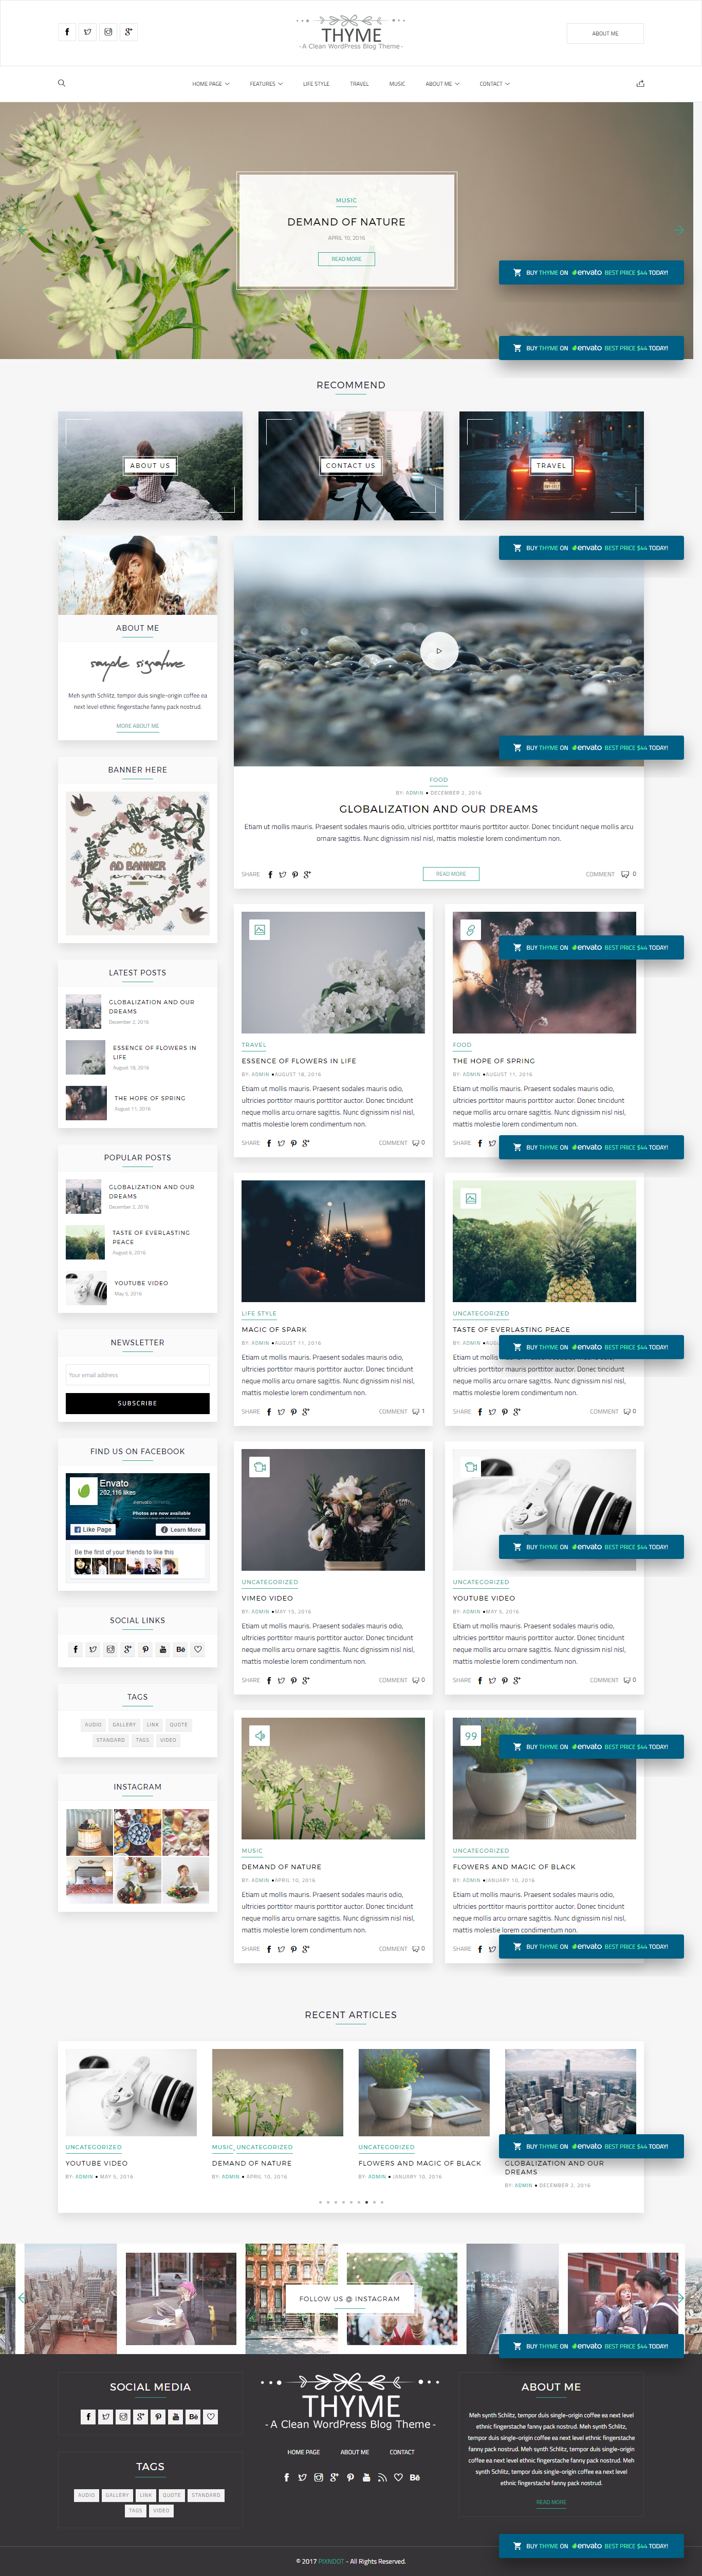 Fein Beste Blog Vorlagen Wordpress Fotos - Entry Level Resume ...